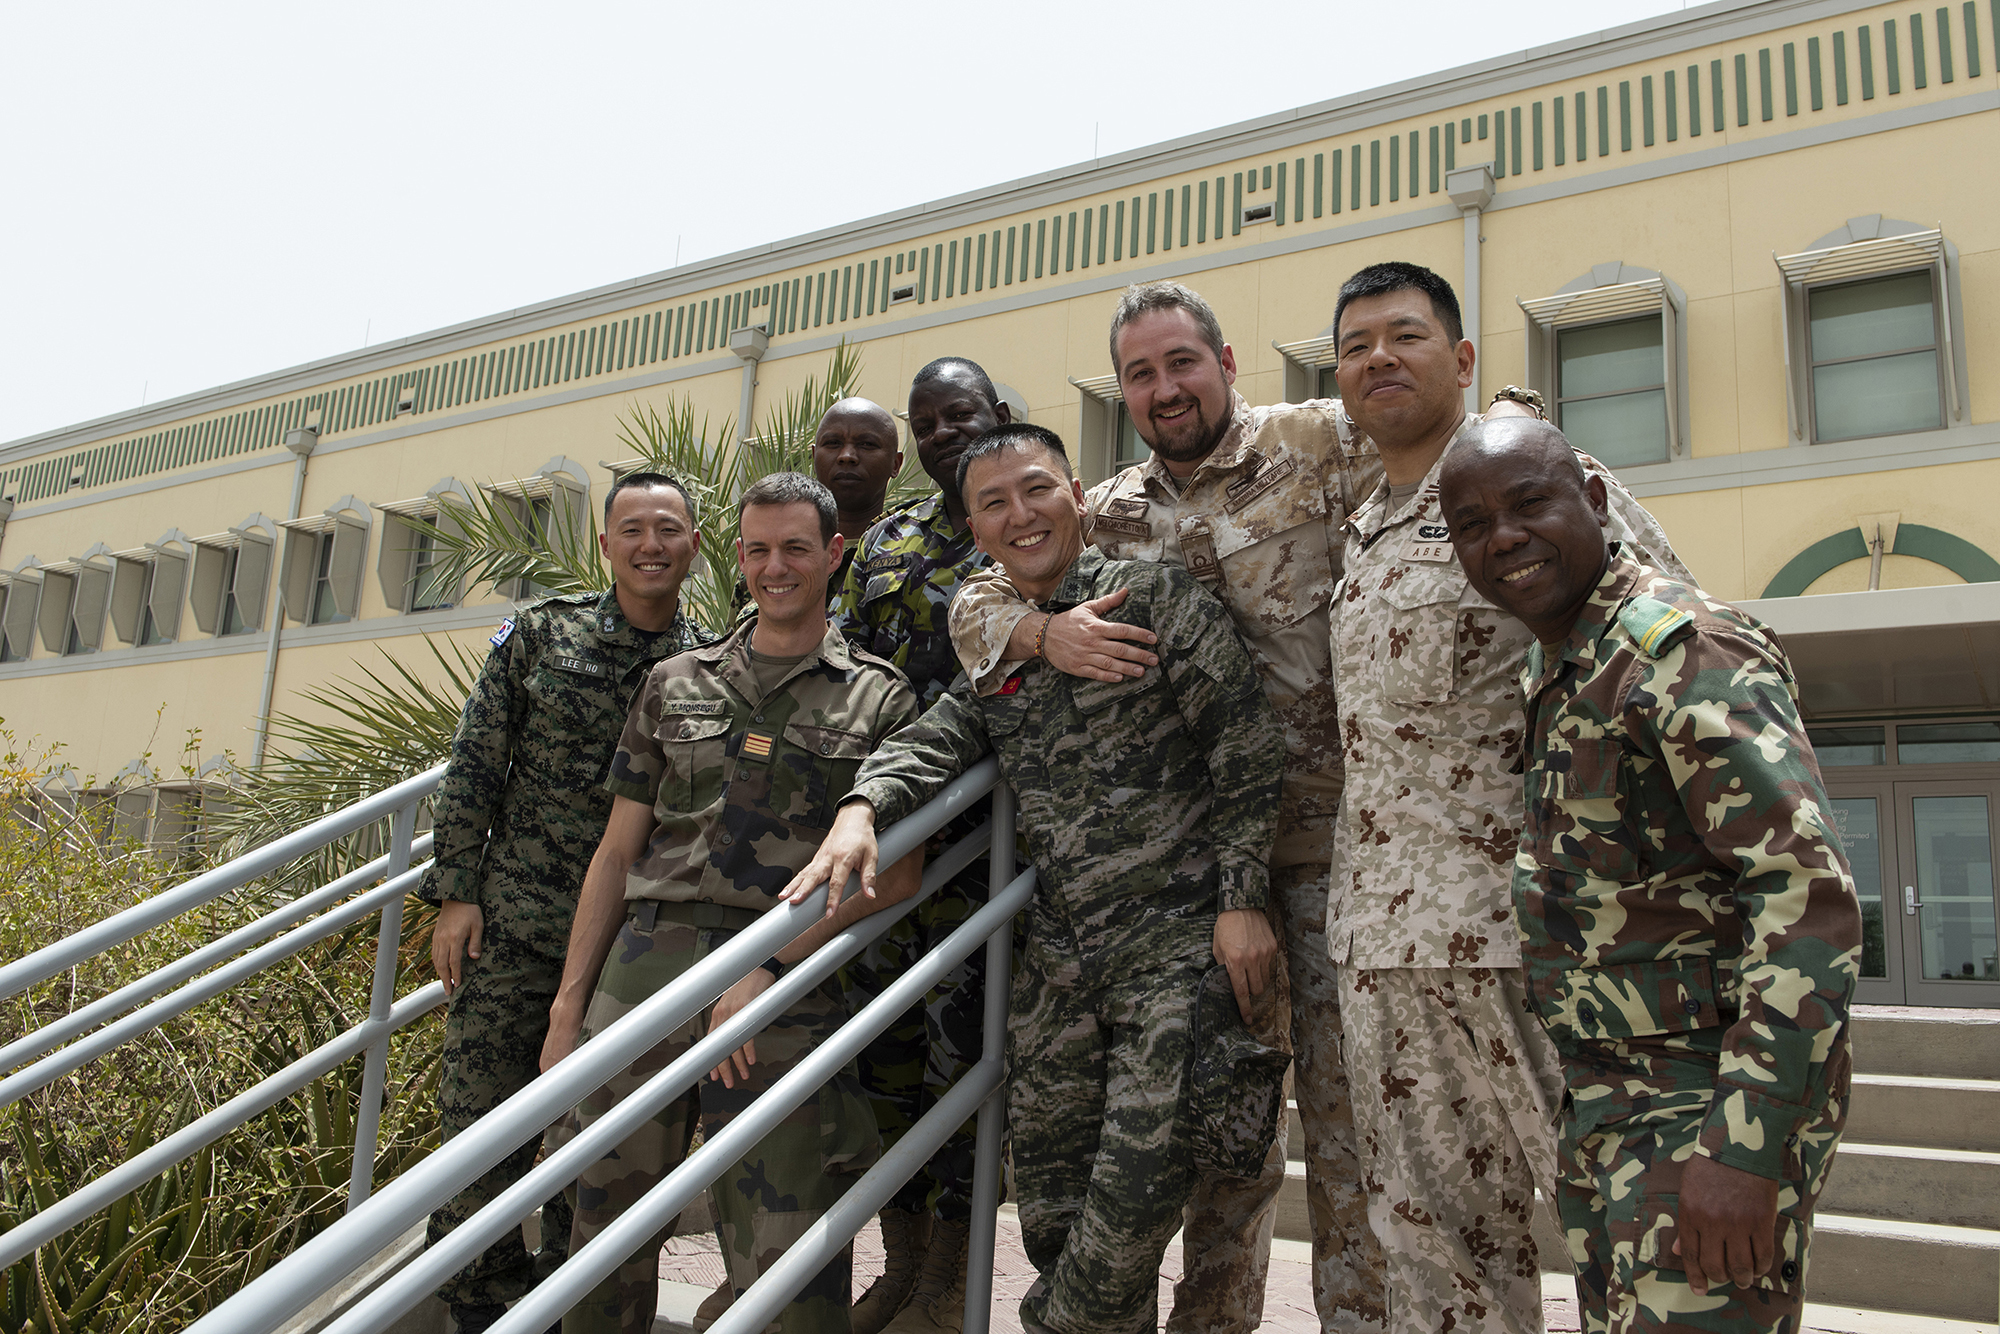 Foreign Liaison Officers pose for a friendly group photo outside of the CJTF-HOA headquarters building, July 18, 2018. Several partner nations send liaison officers to work alongside, support and train CJTF-HOA staff to help increase partner capacity, helping to establish a more secure, stable, and prosperous African continent. (U.S. Air National Guard photo by Master Sgt. Sarah Mattison)